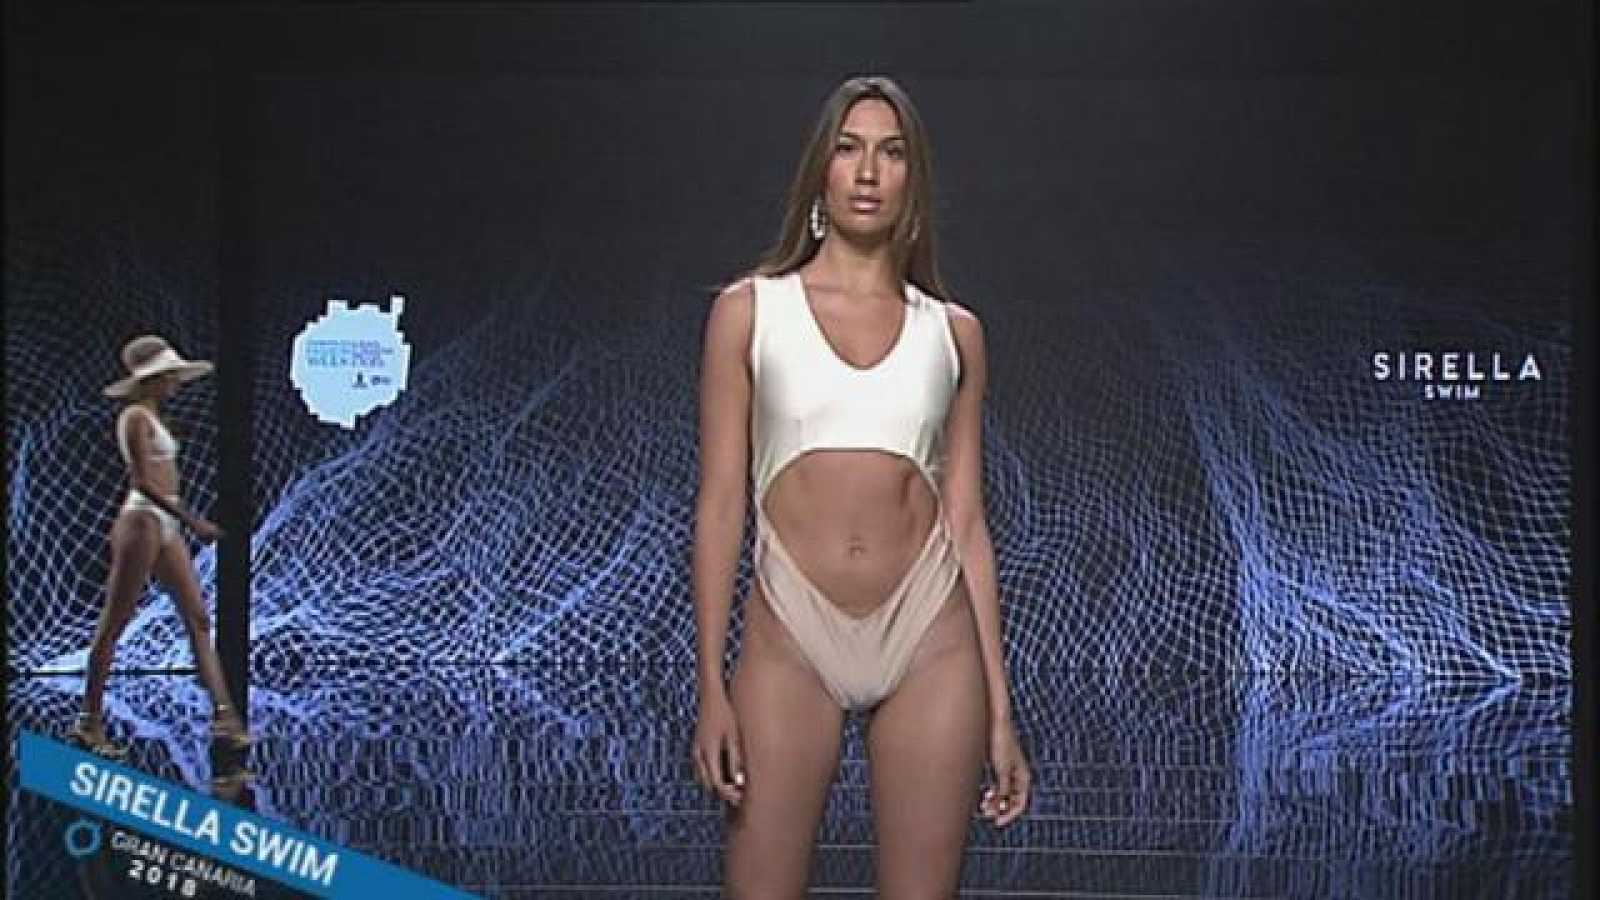 SWIMWEAR FASHION WEEK GRAN CANARIA MODA CÁLIDA 2018  16/06/2018